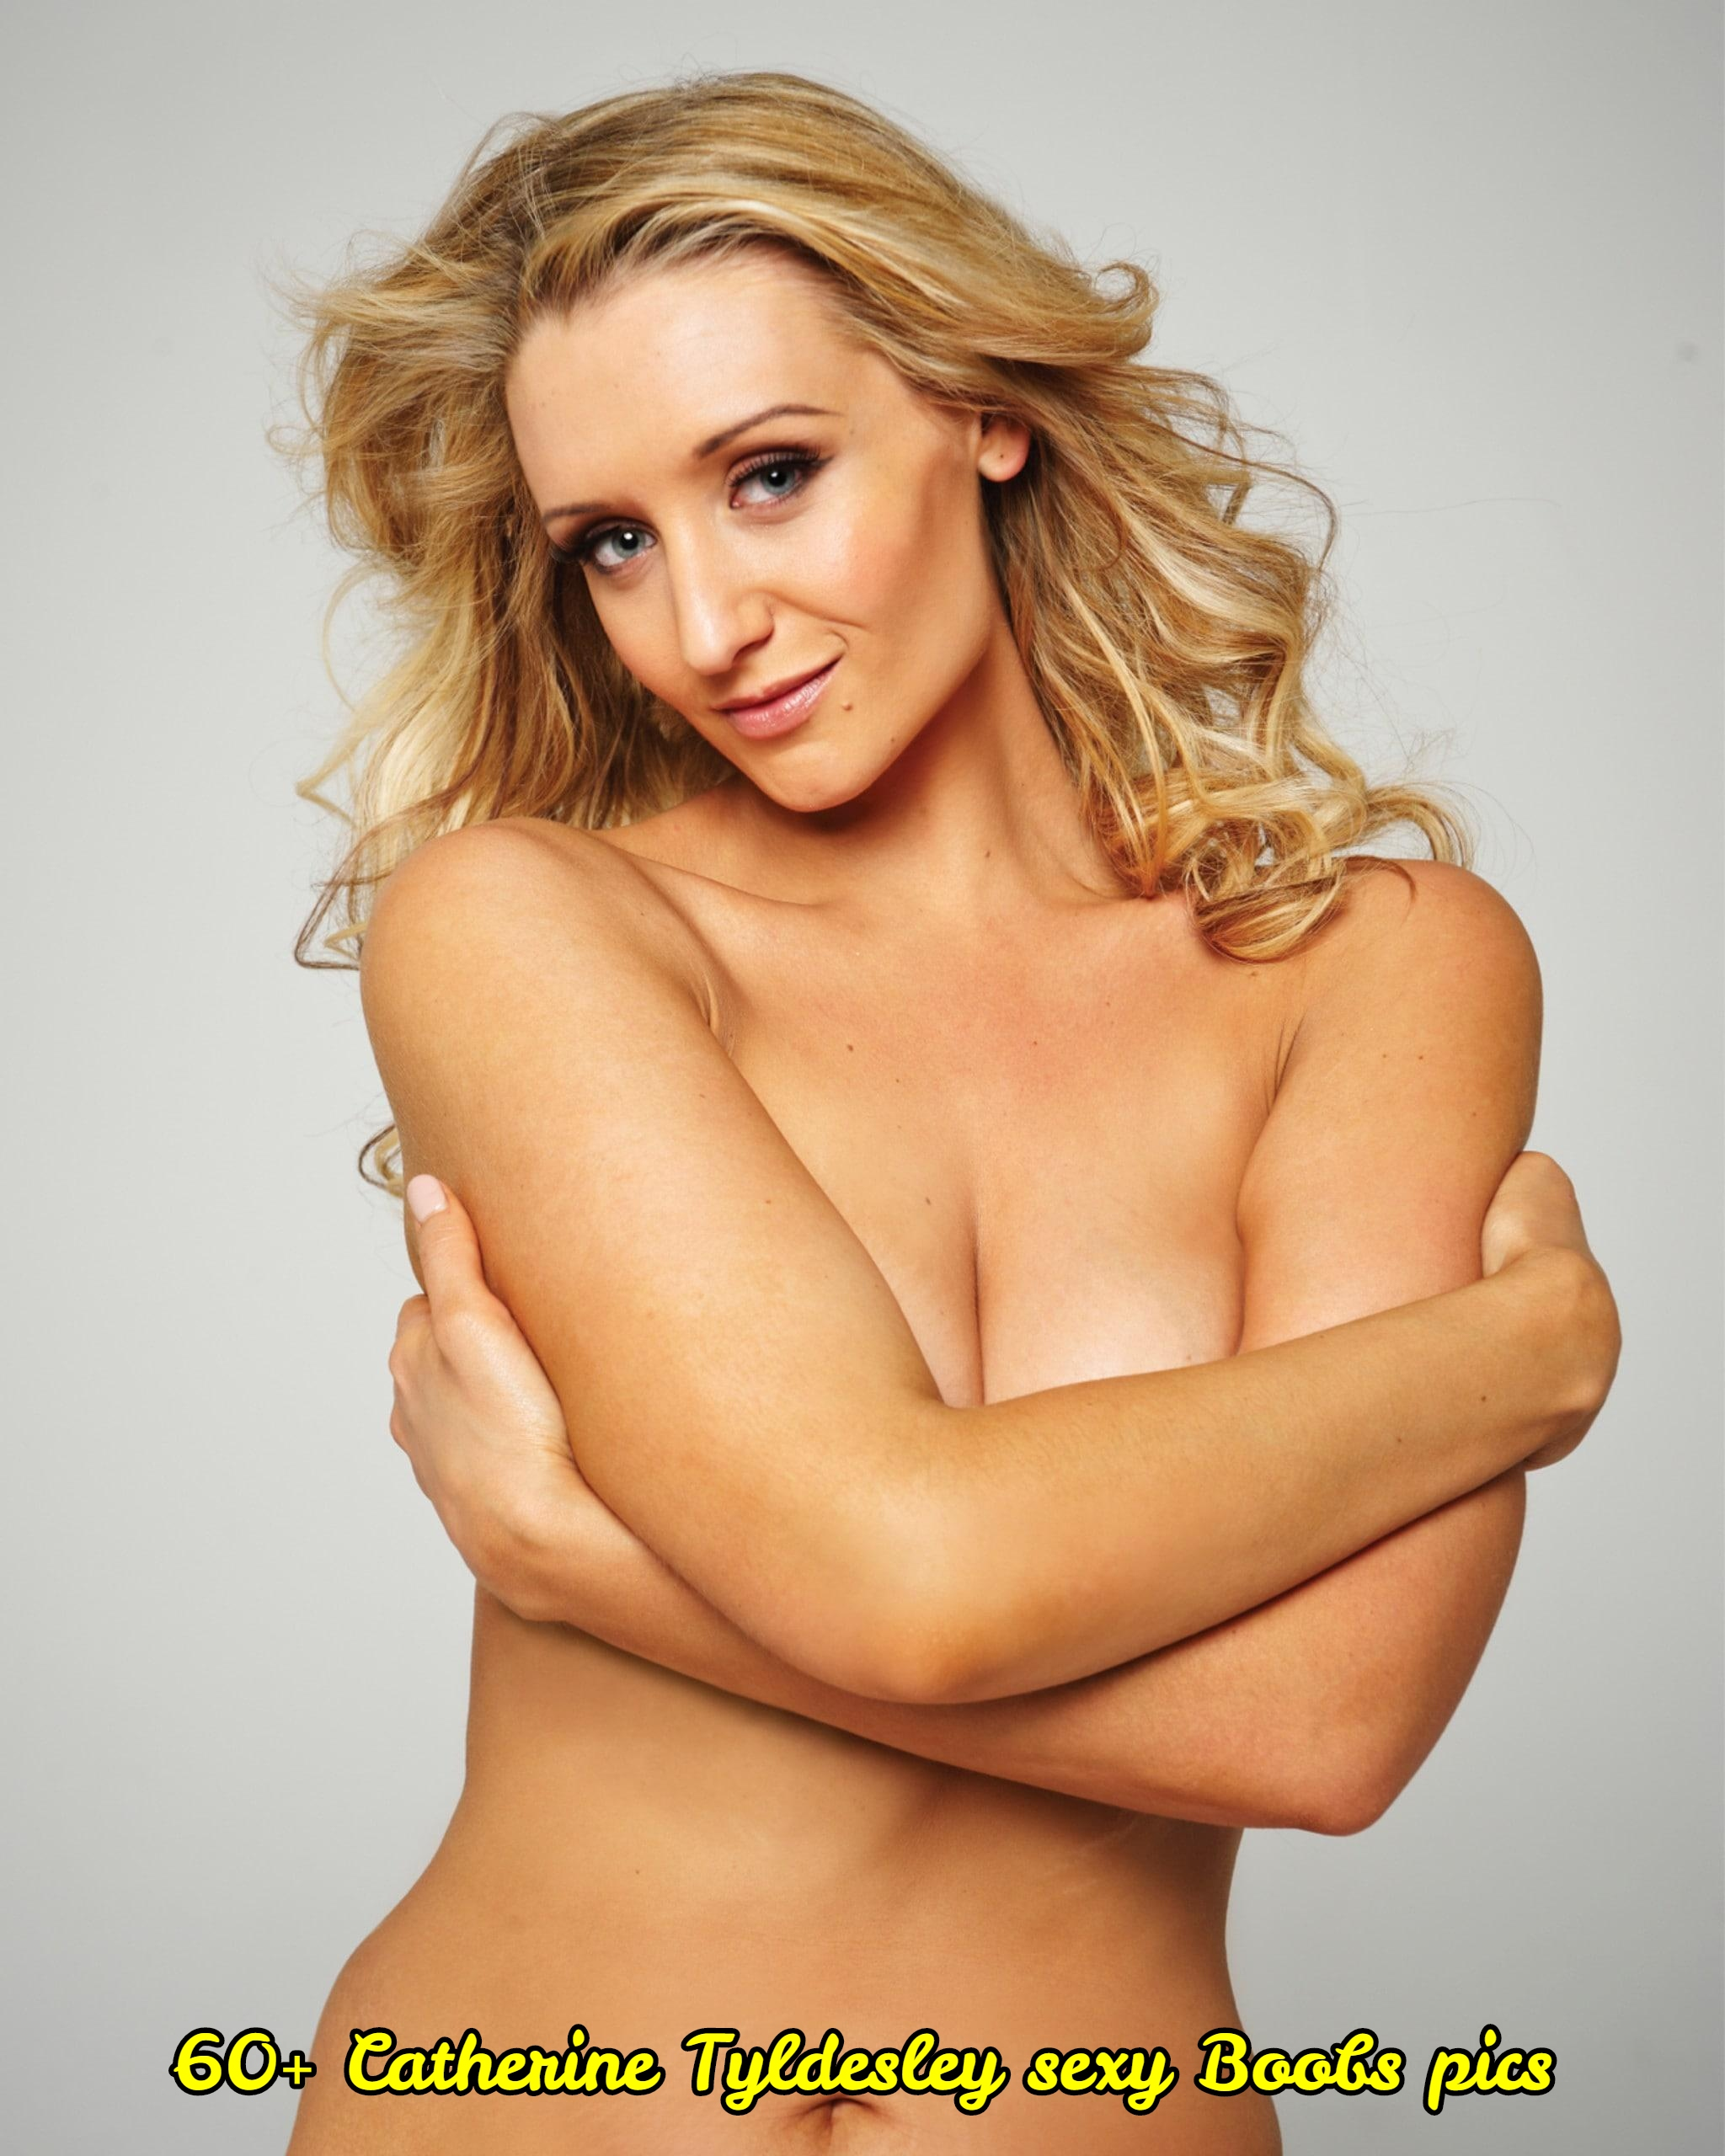 Catherine Tyldesley sexy pictures